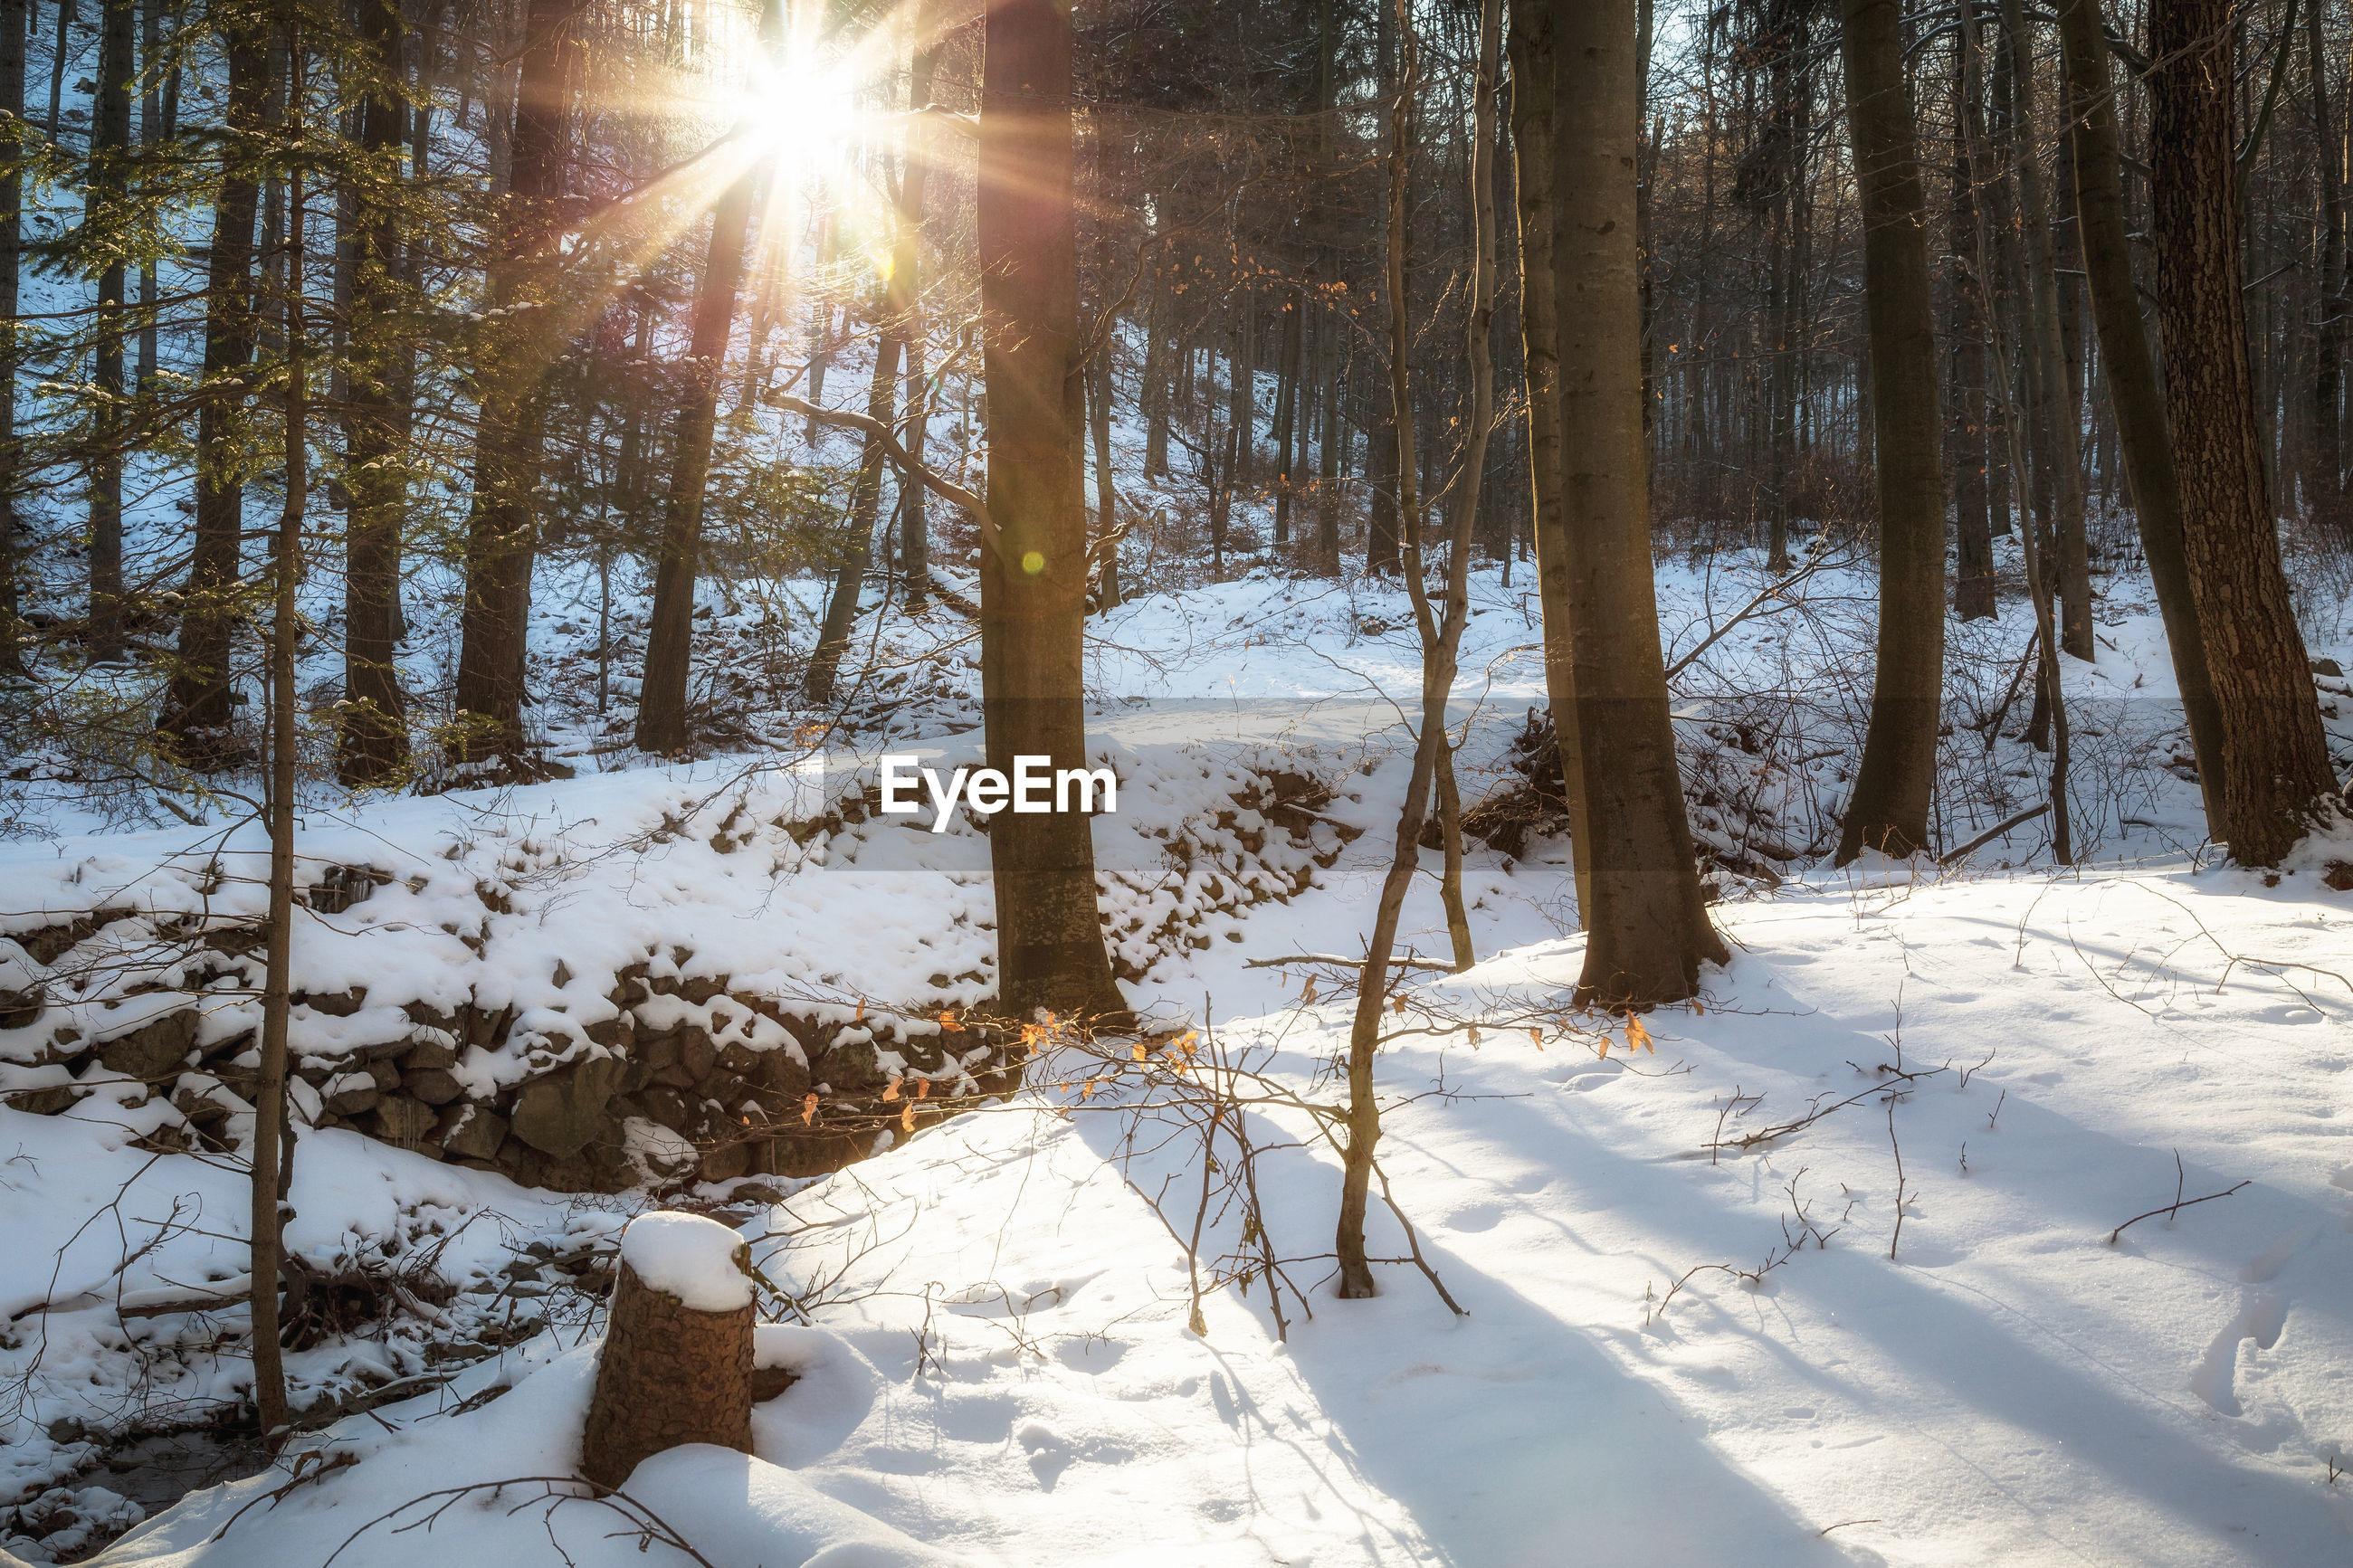 VIEW OF TREES ON SNOW COVERED LANDSCAPE